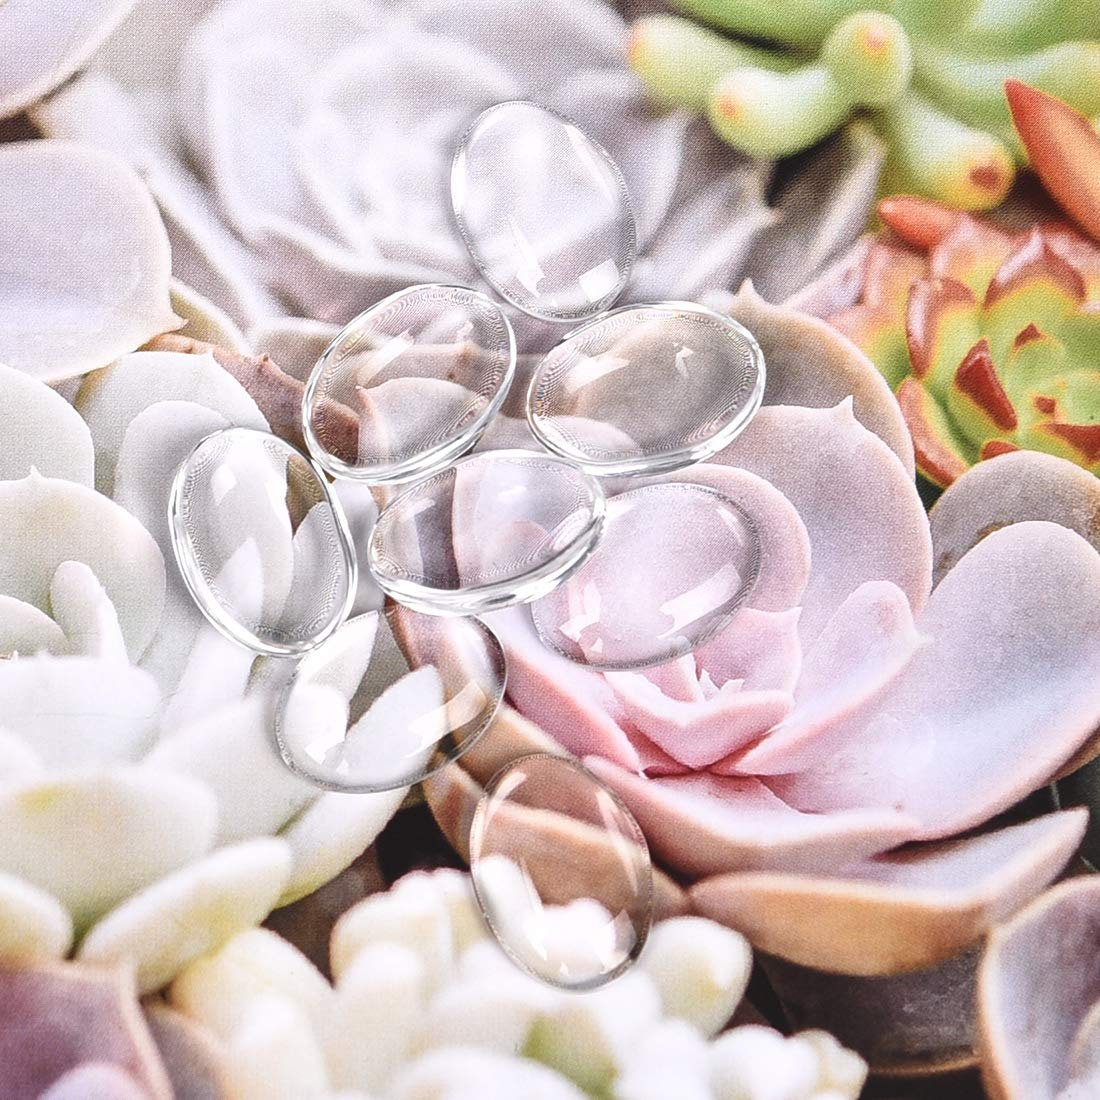 Round Glass Oval Cabochons,Crystal Clear Round Cabochon Flat Back Glass Dome Tile Jewellery Making 6mm 100Pcs